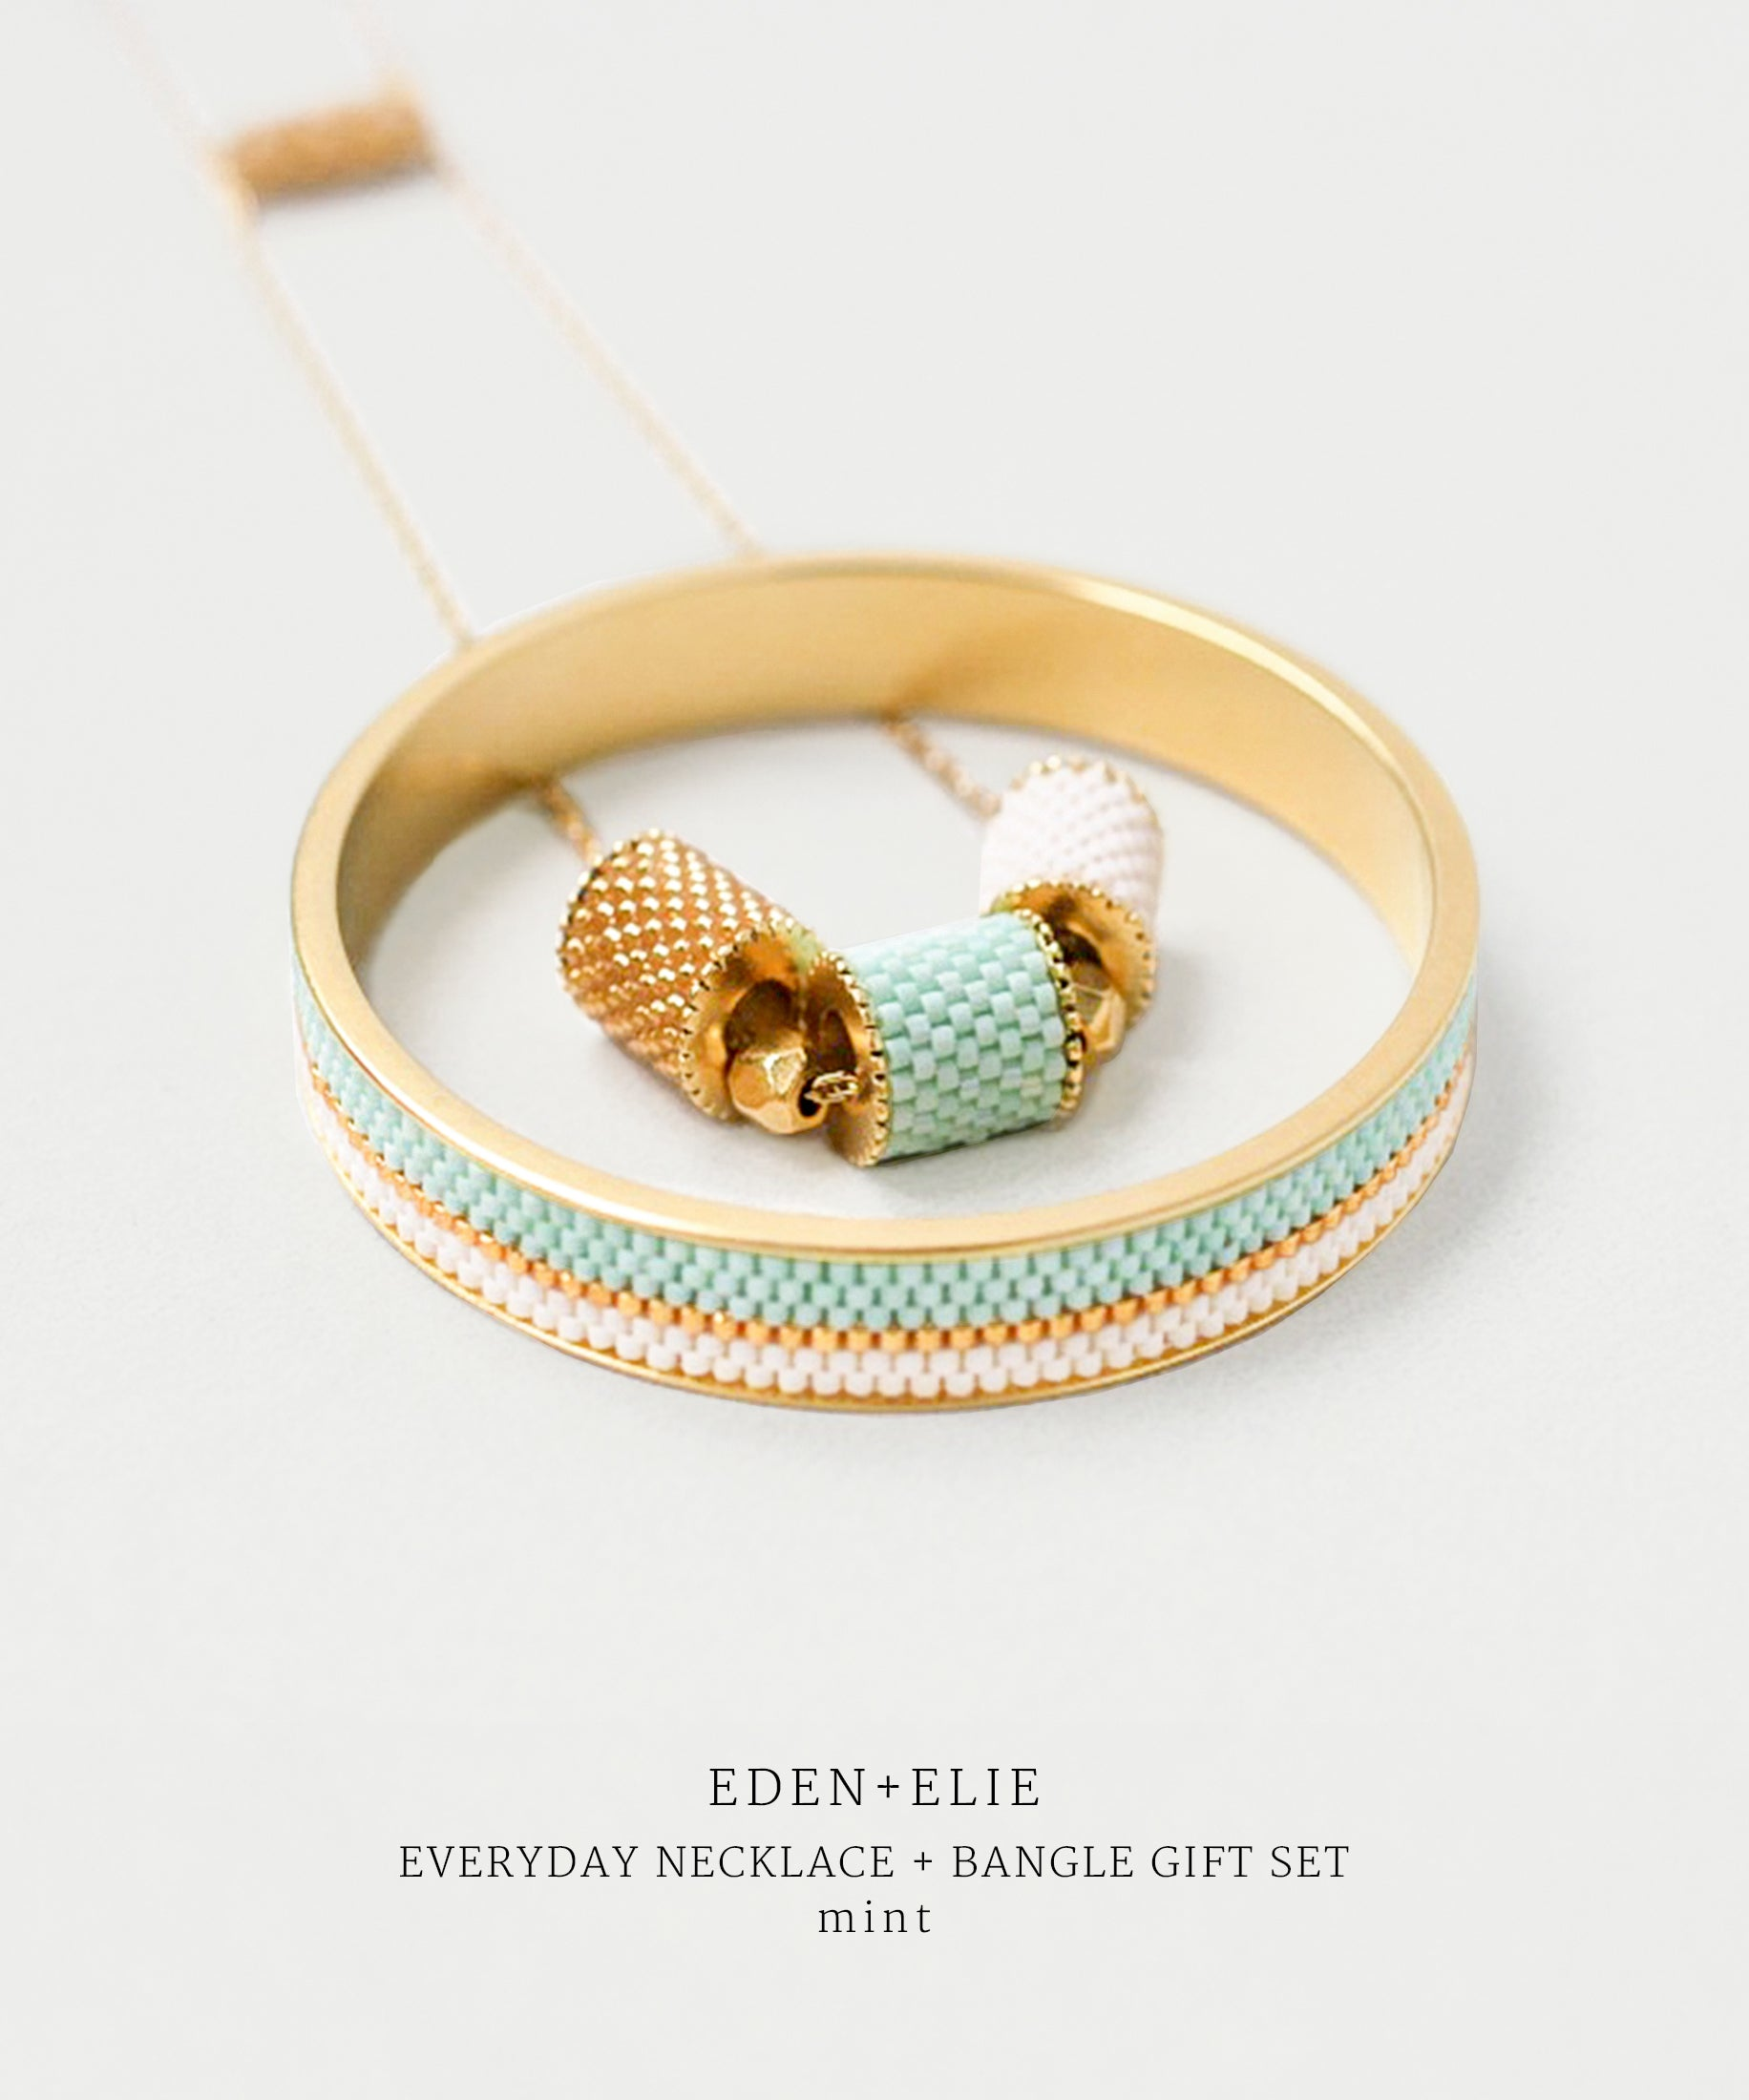 DEN + ELIE gold plated jewelry Everyday adjustable length necklace + bangle set - mint green